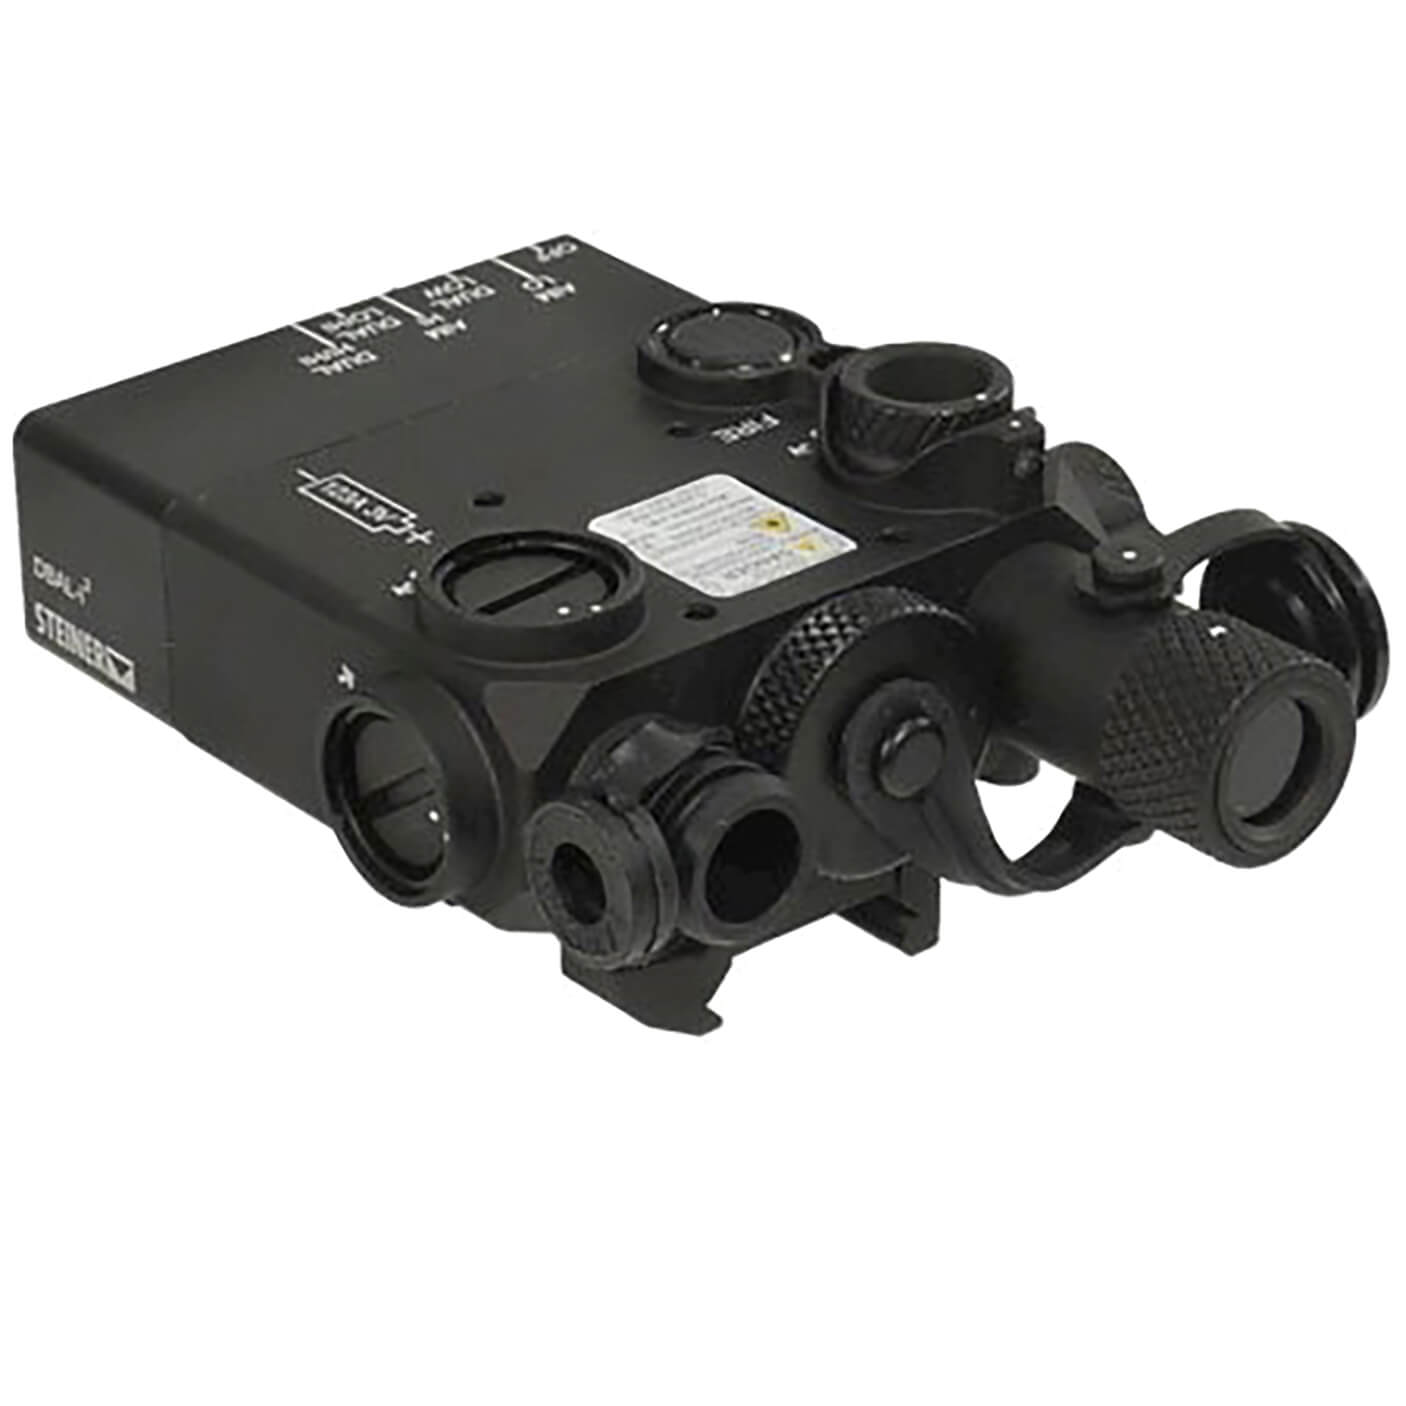 Picture for category Laser Devices